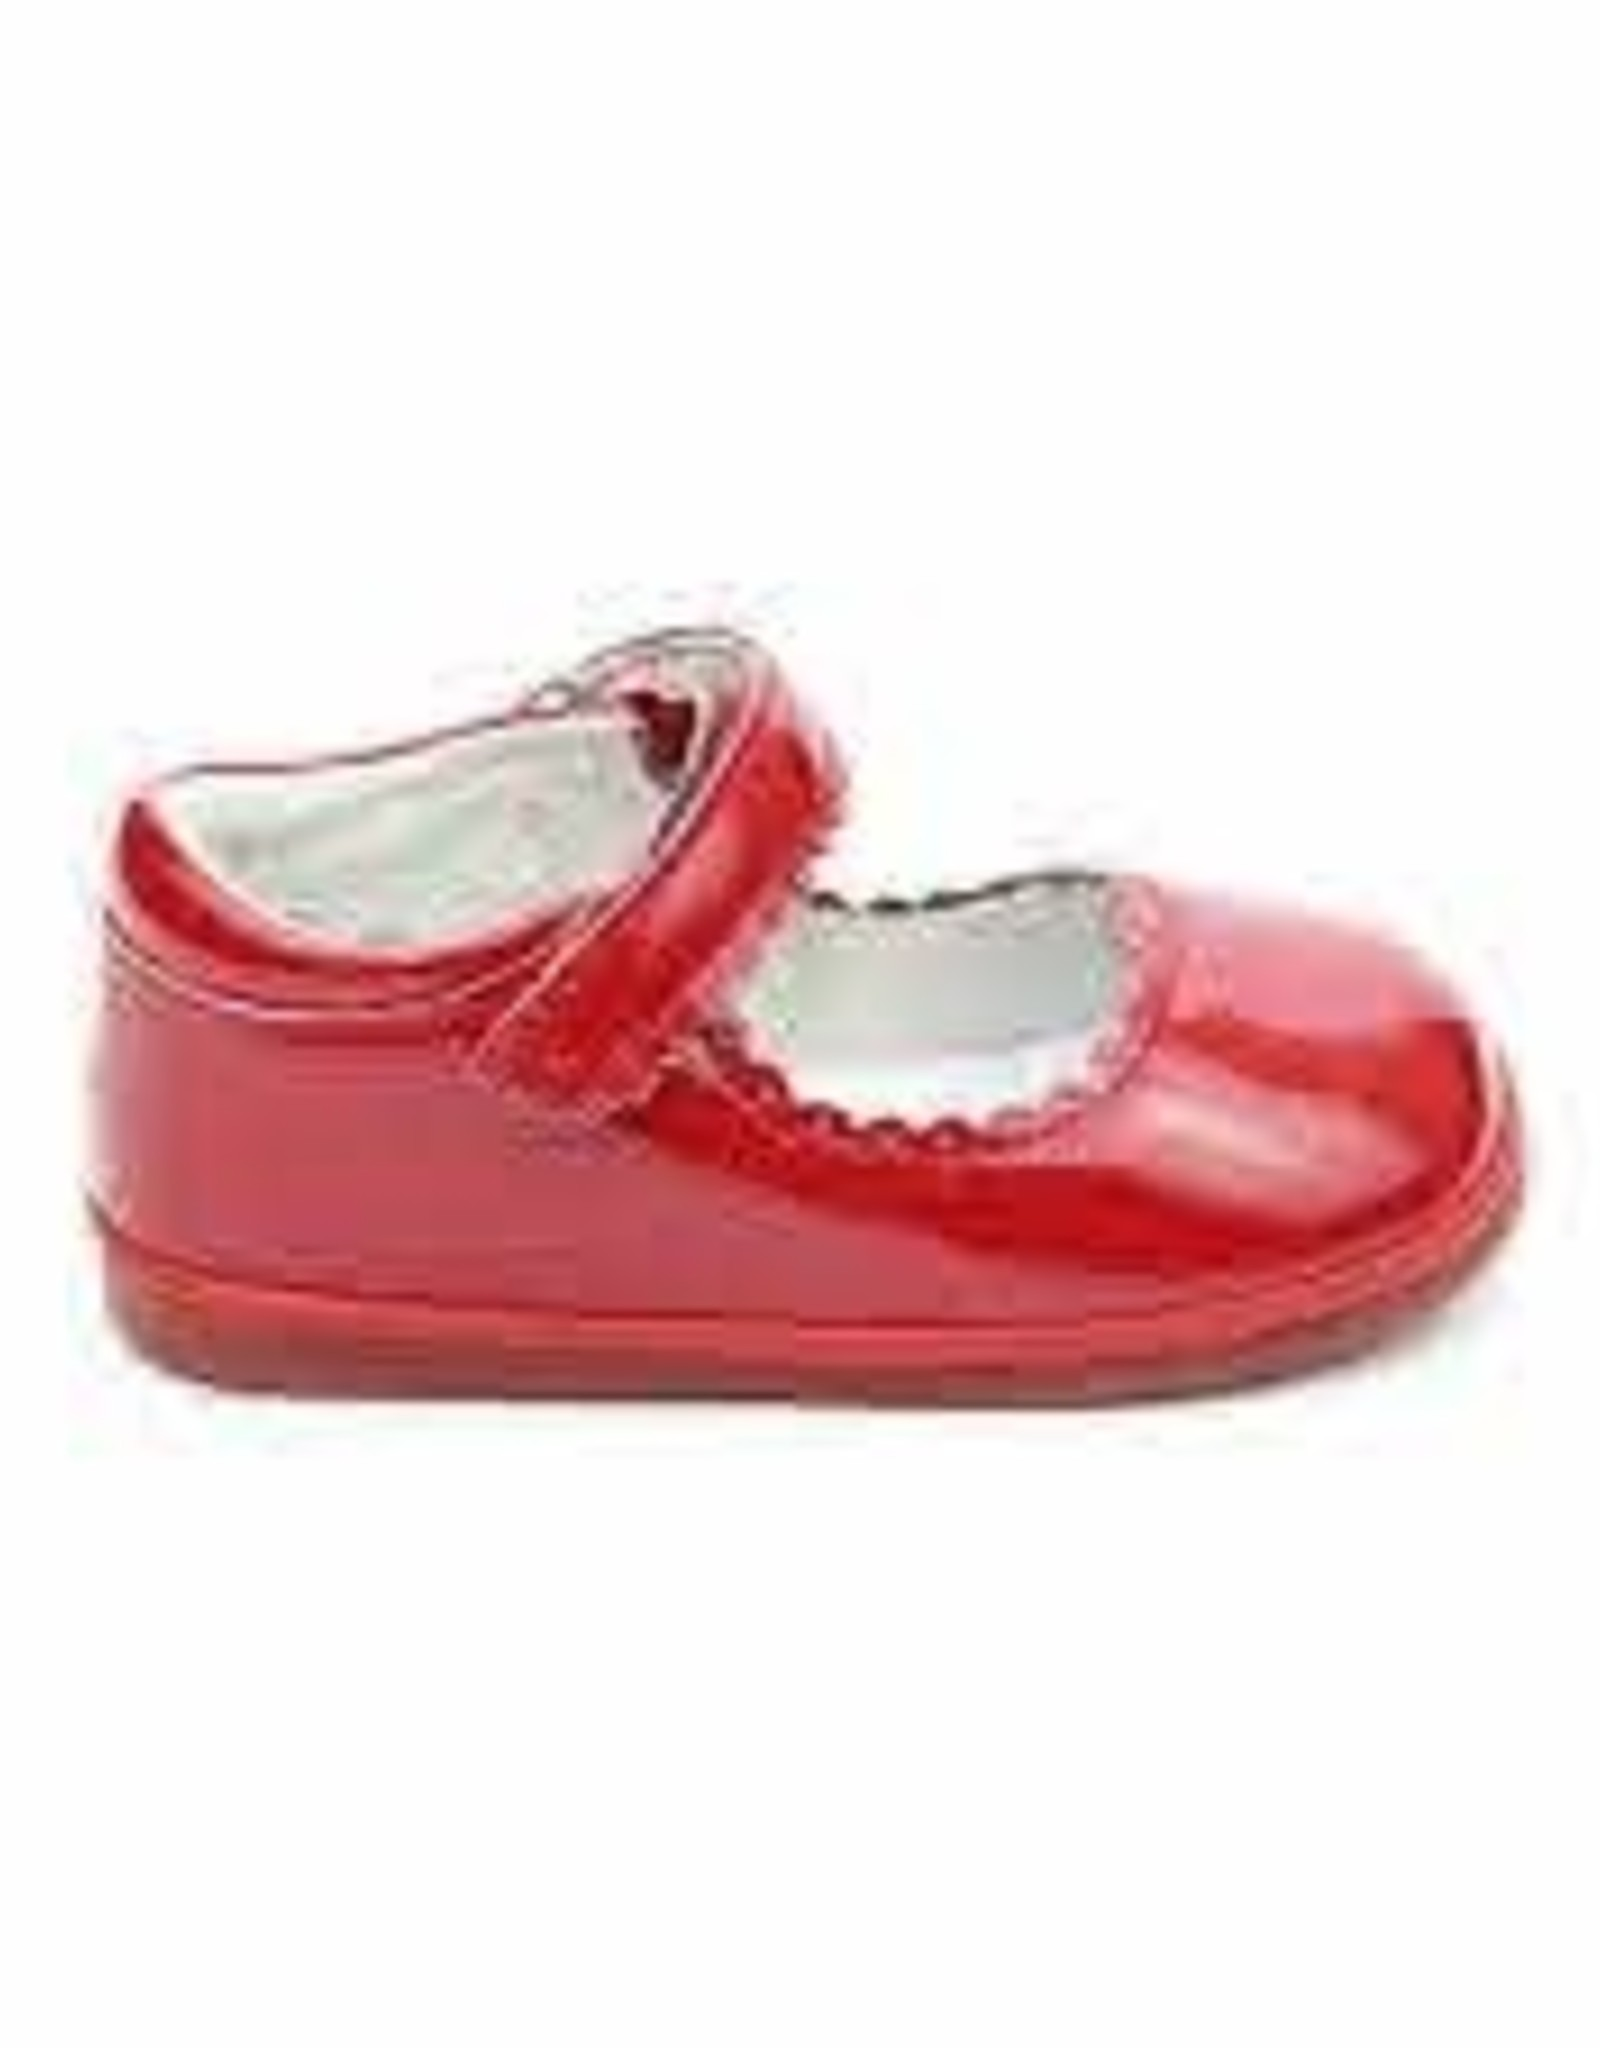 L'Amour Cara Scalloped MJ Patent Red